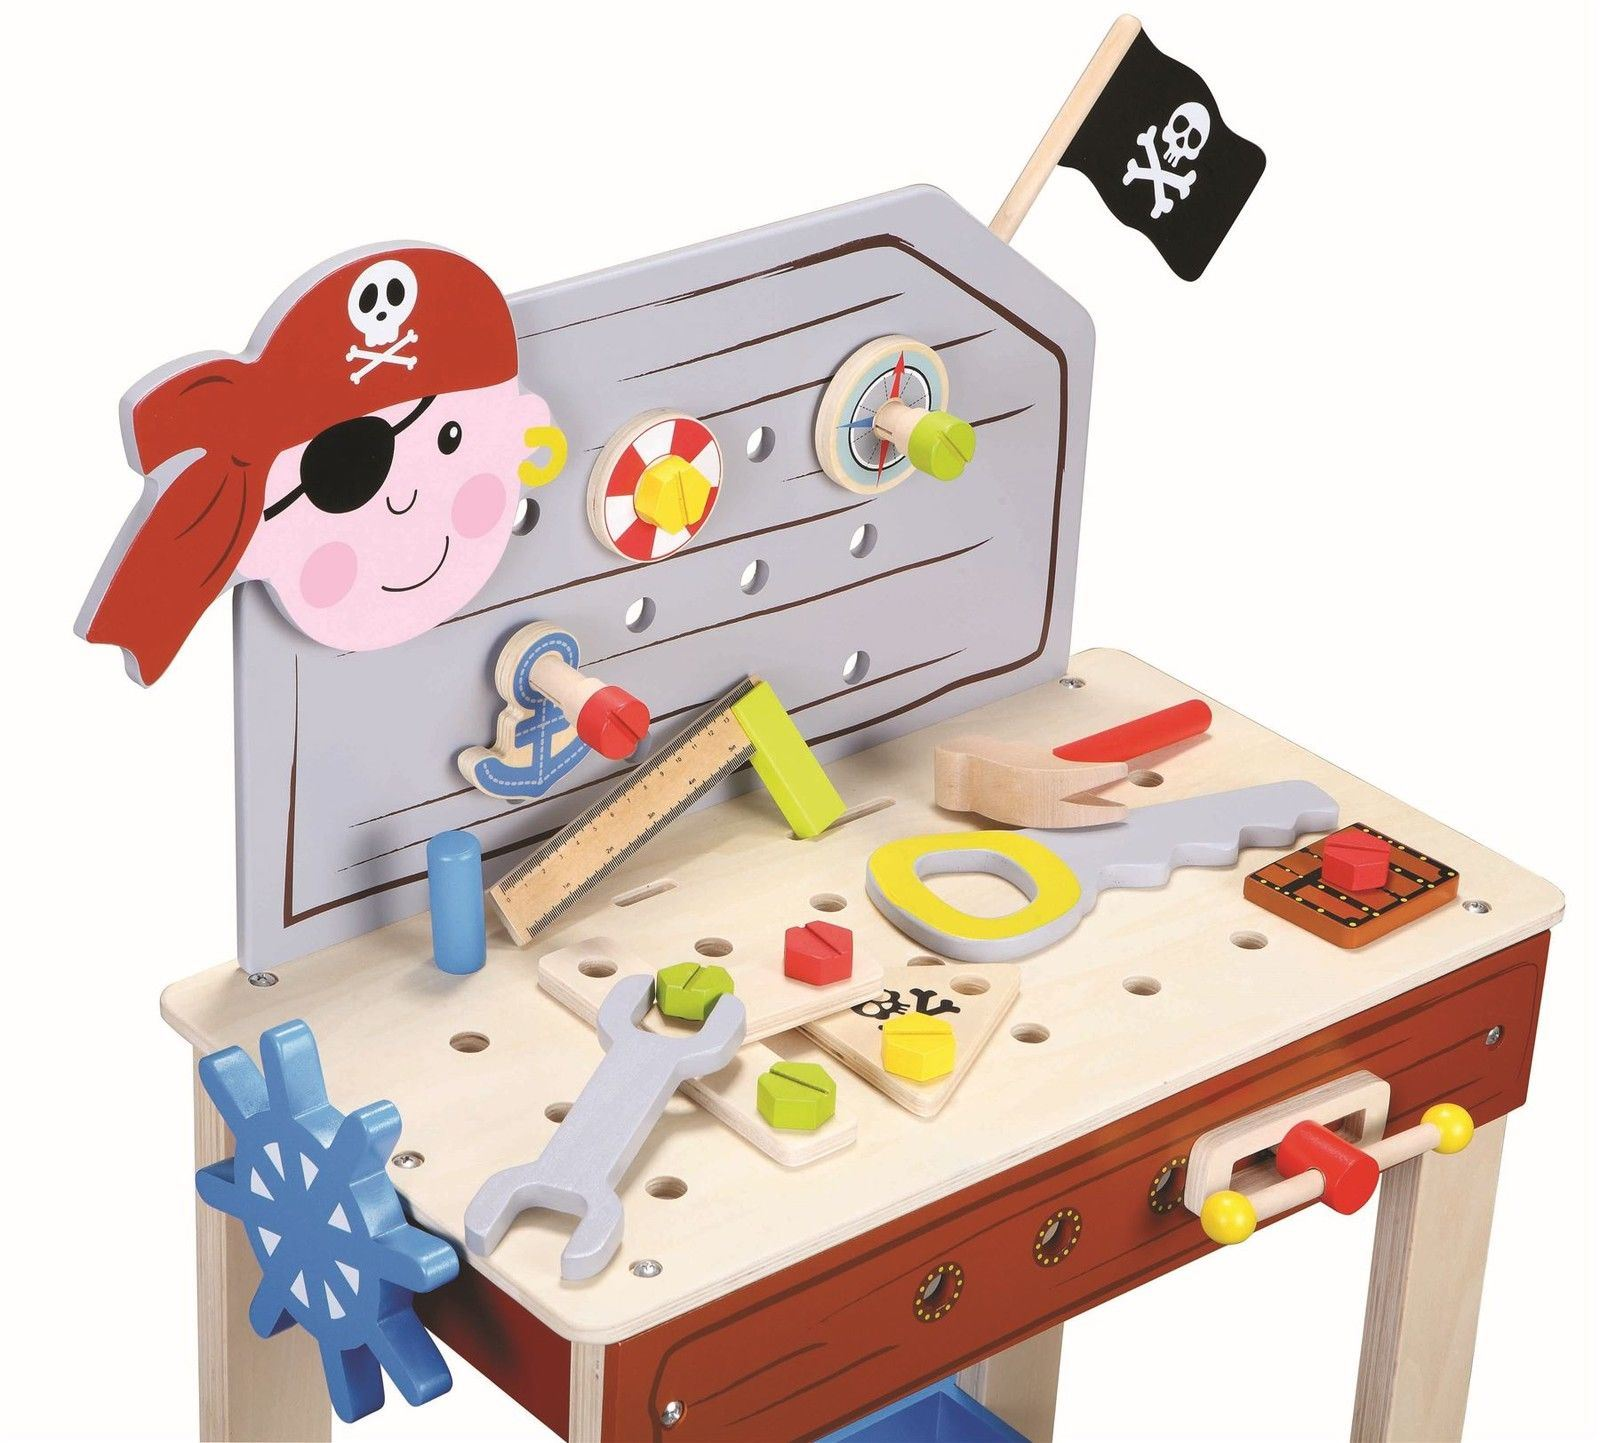 Lelin Wood Pirate Bench Tools Wooden Pretend Role Playing Toy Set Age 3 Years